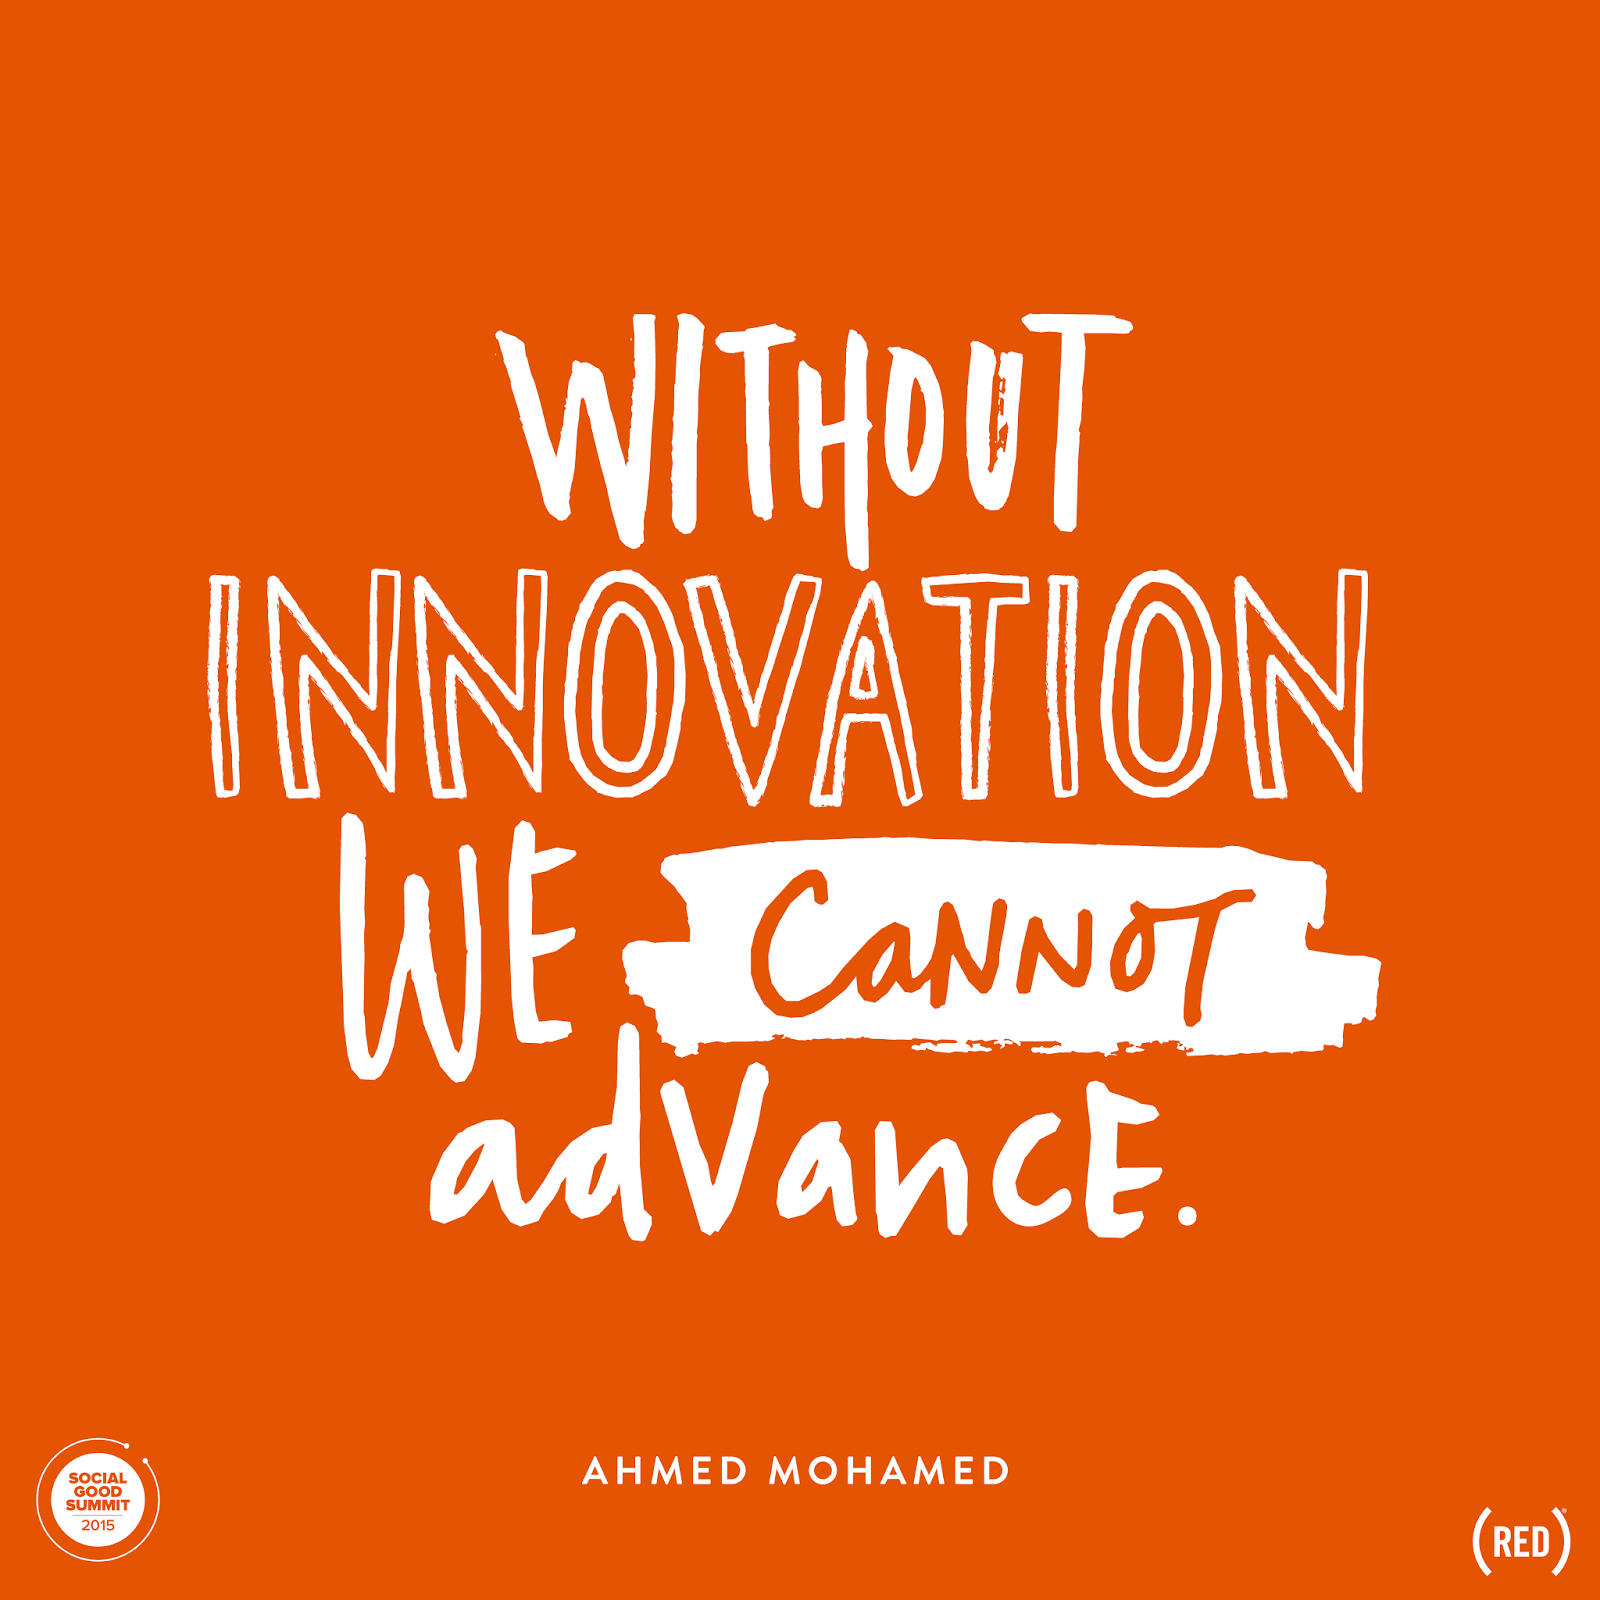 Quotes On Innovation Social Good Summit 2015 Inspiring Quotes For Global Citizens